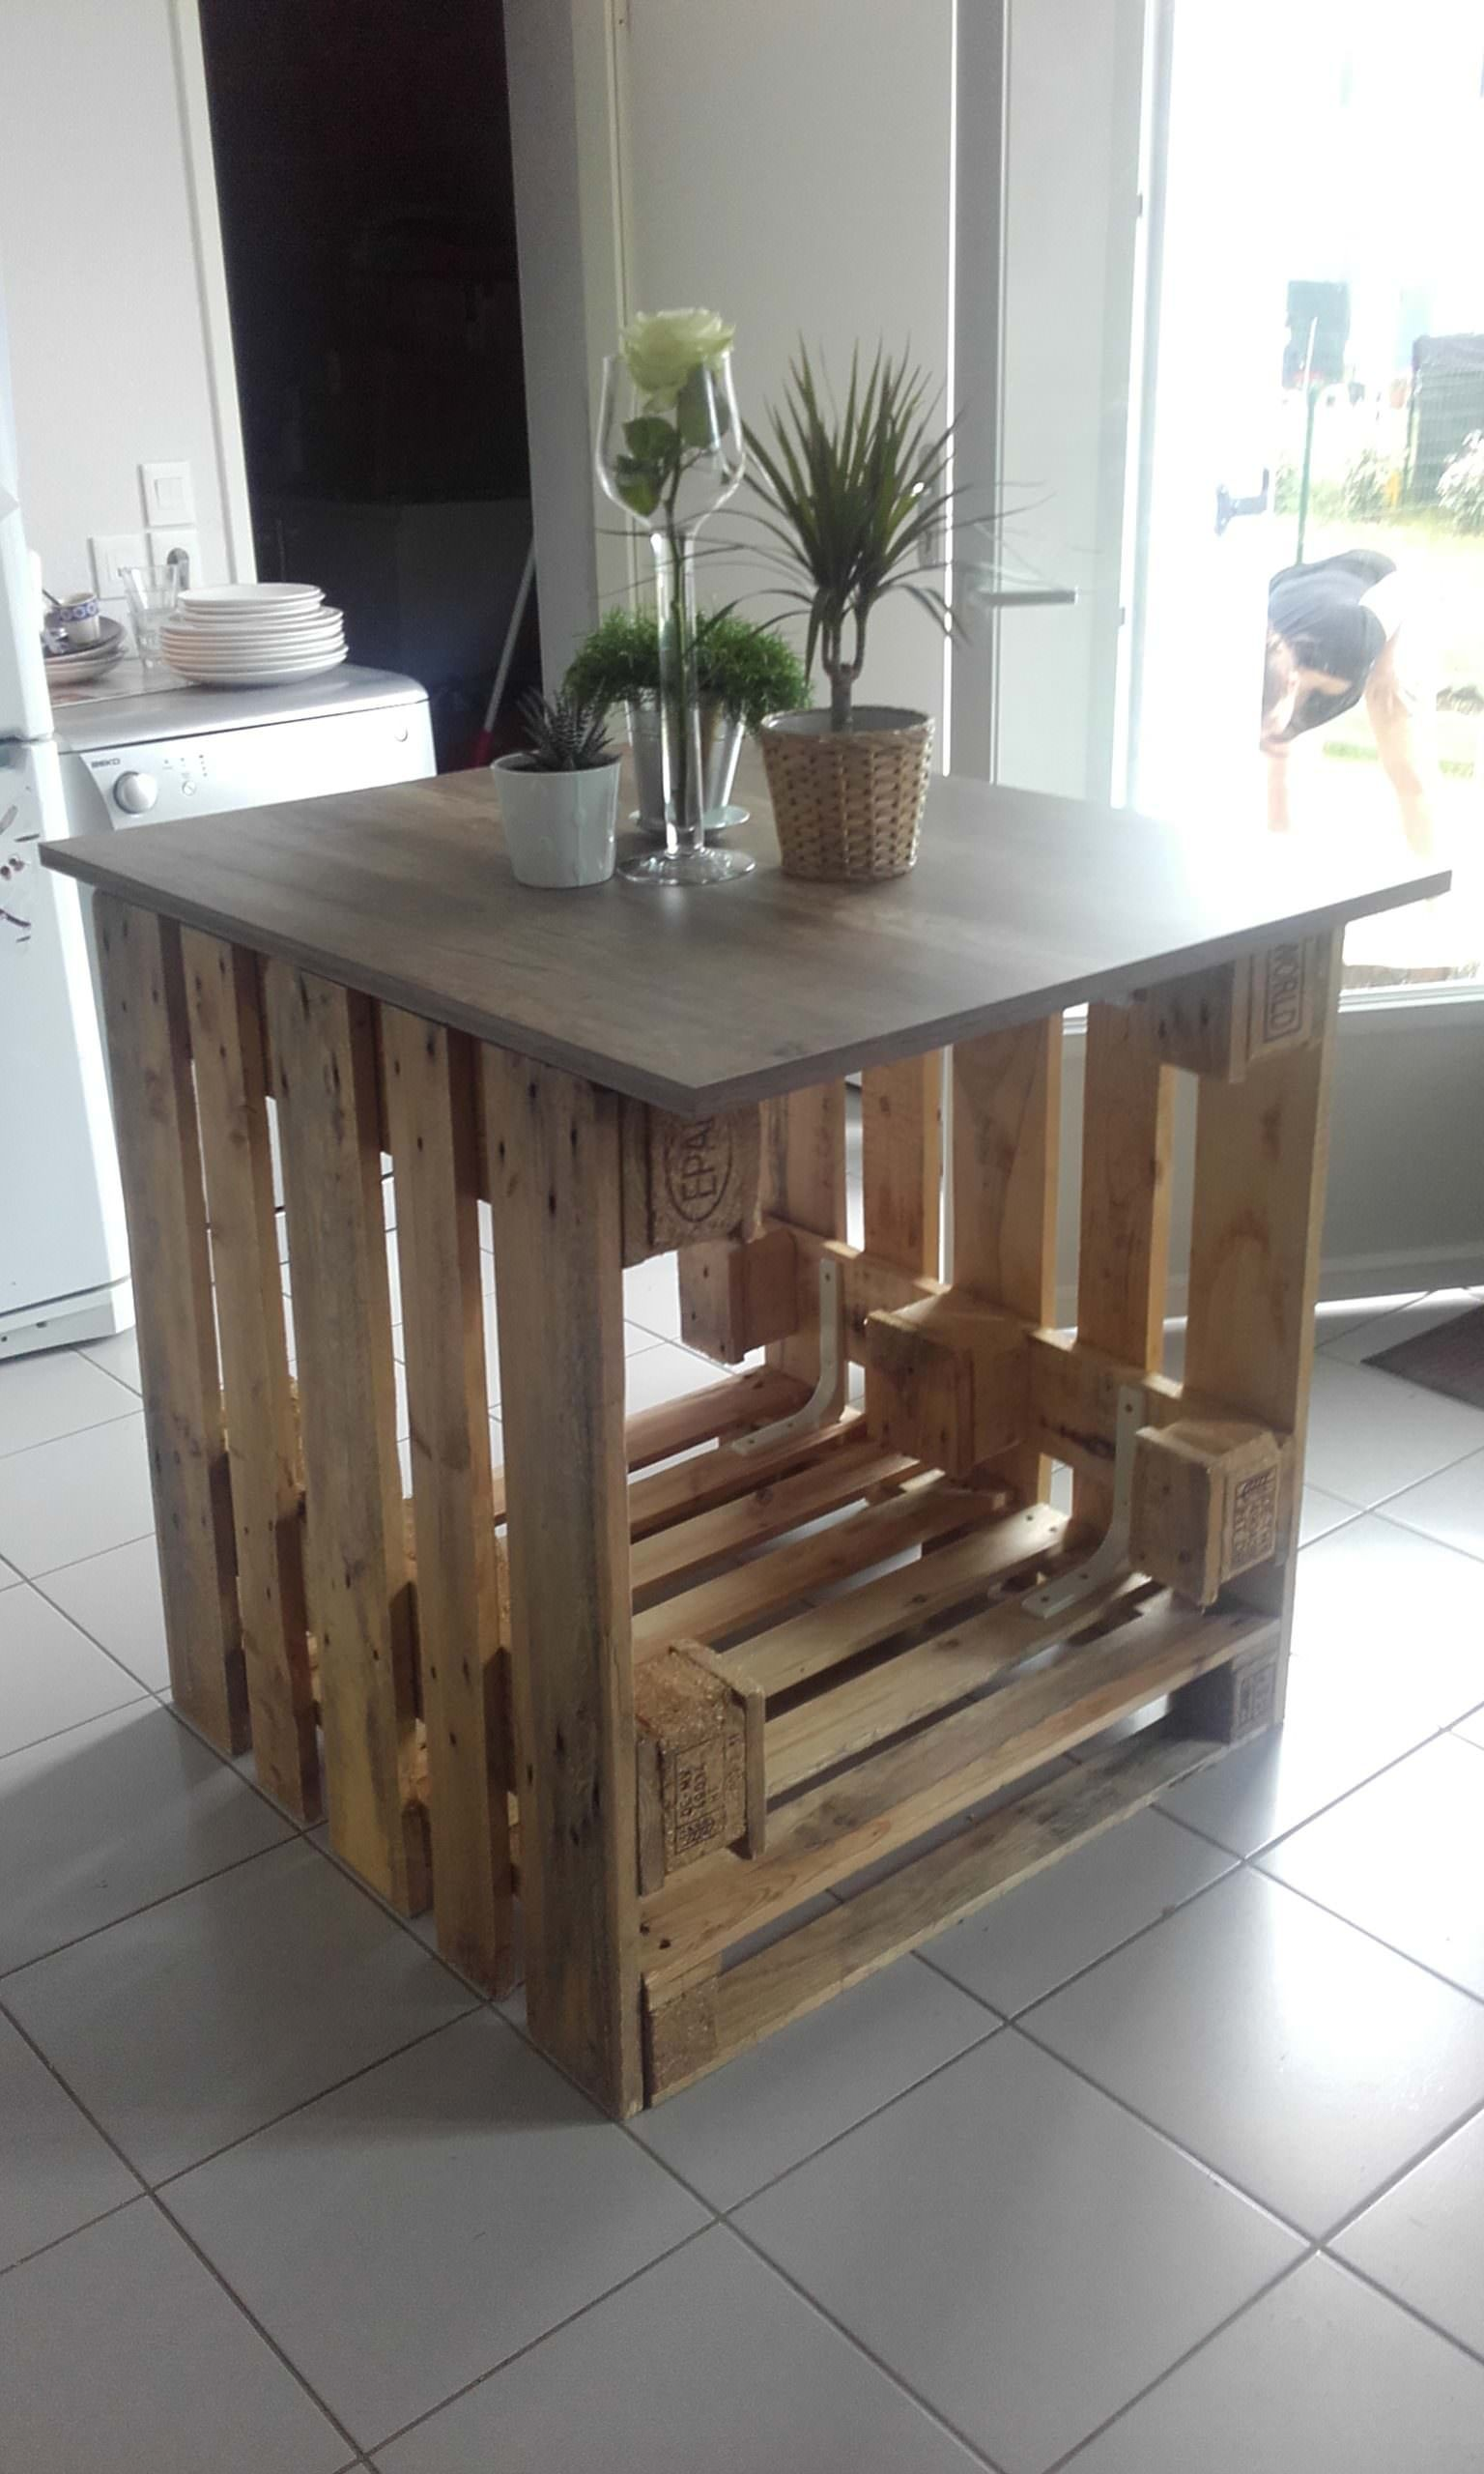 Ilot Central Cuisine Bulthaup ~  Lot Central Cuisine Pallet Kitchen Island Pallet Kitchen Island